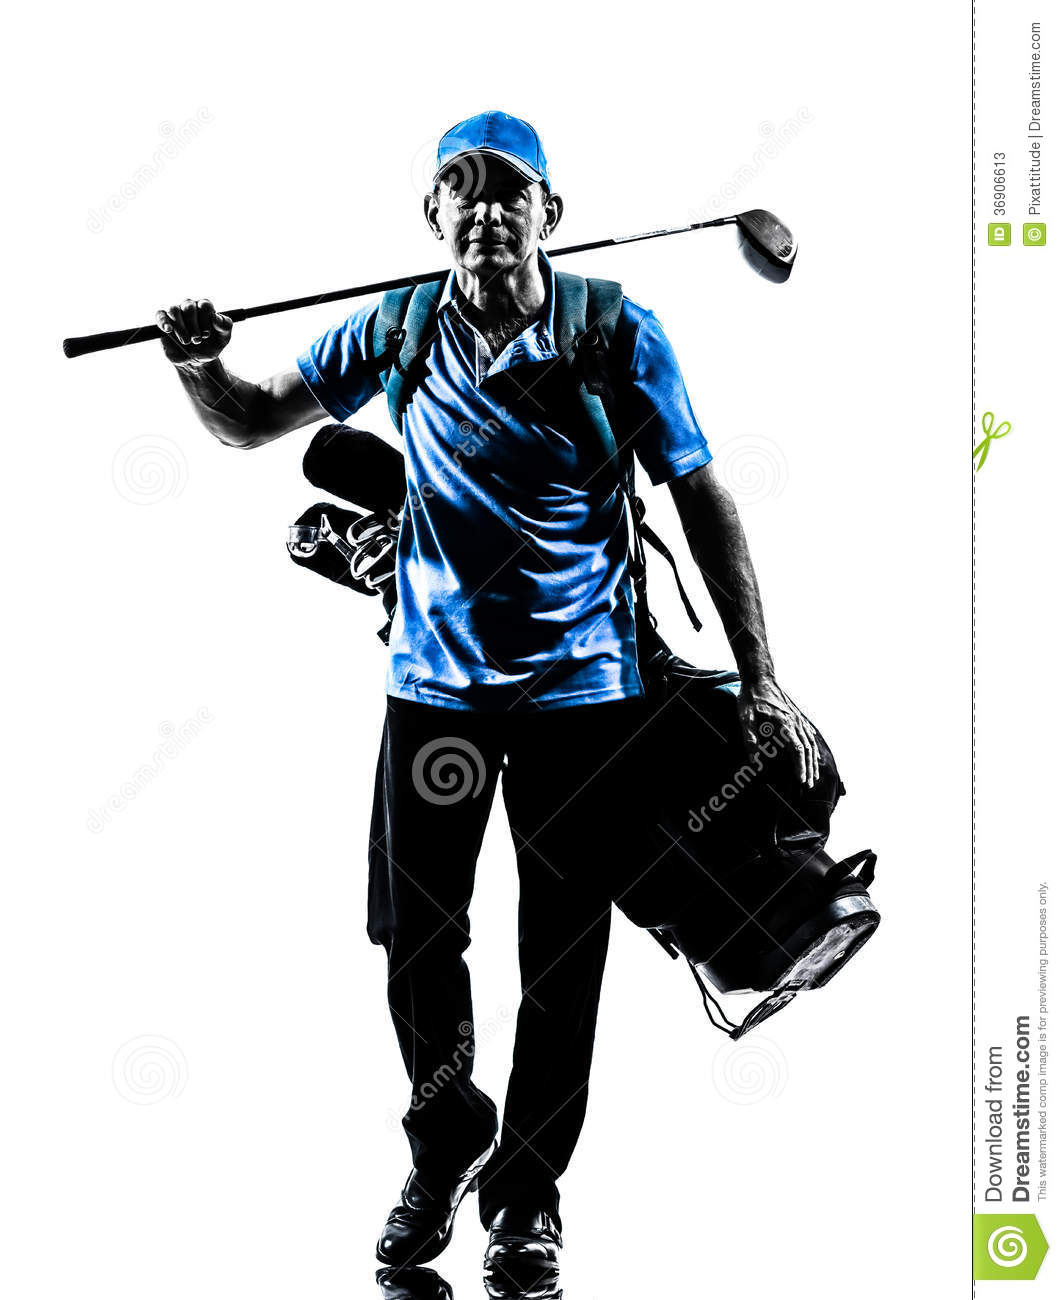 Man golfer golfing golf bag walking silhouette